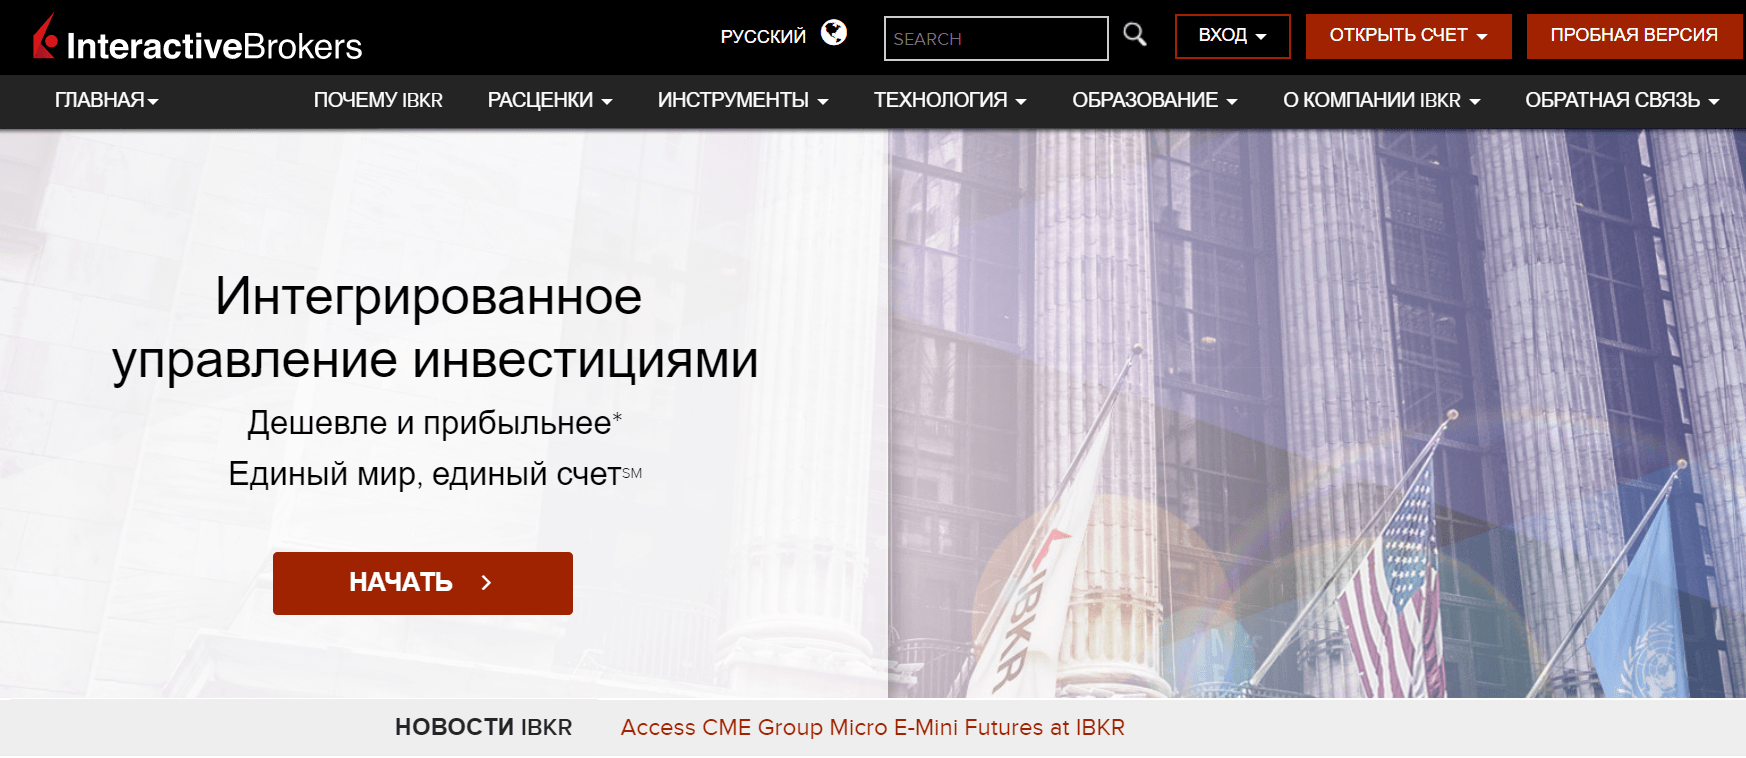 Interactive Brokers отзывы